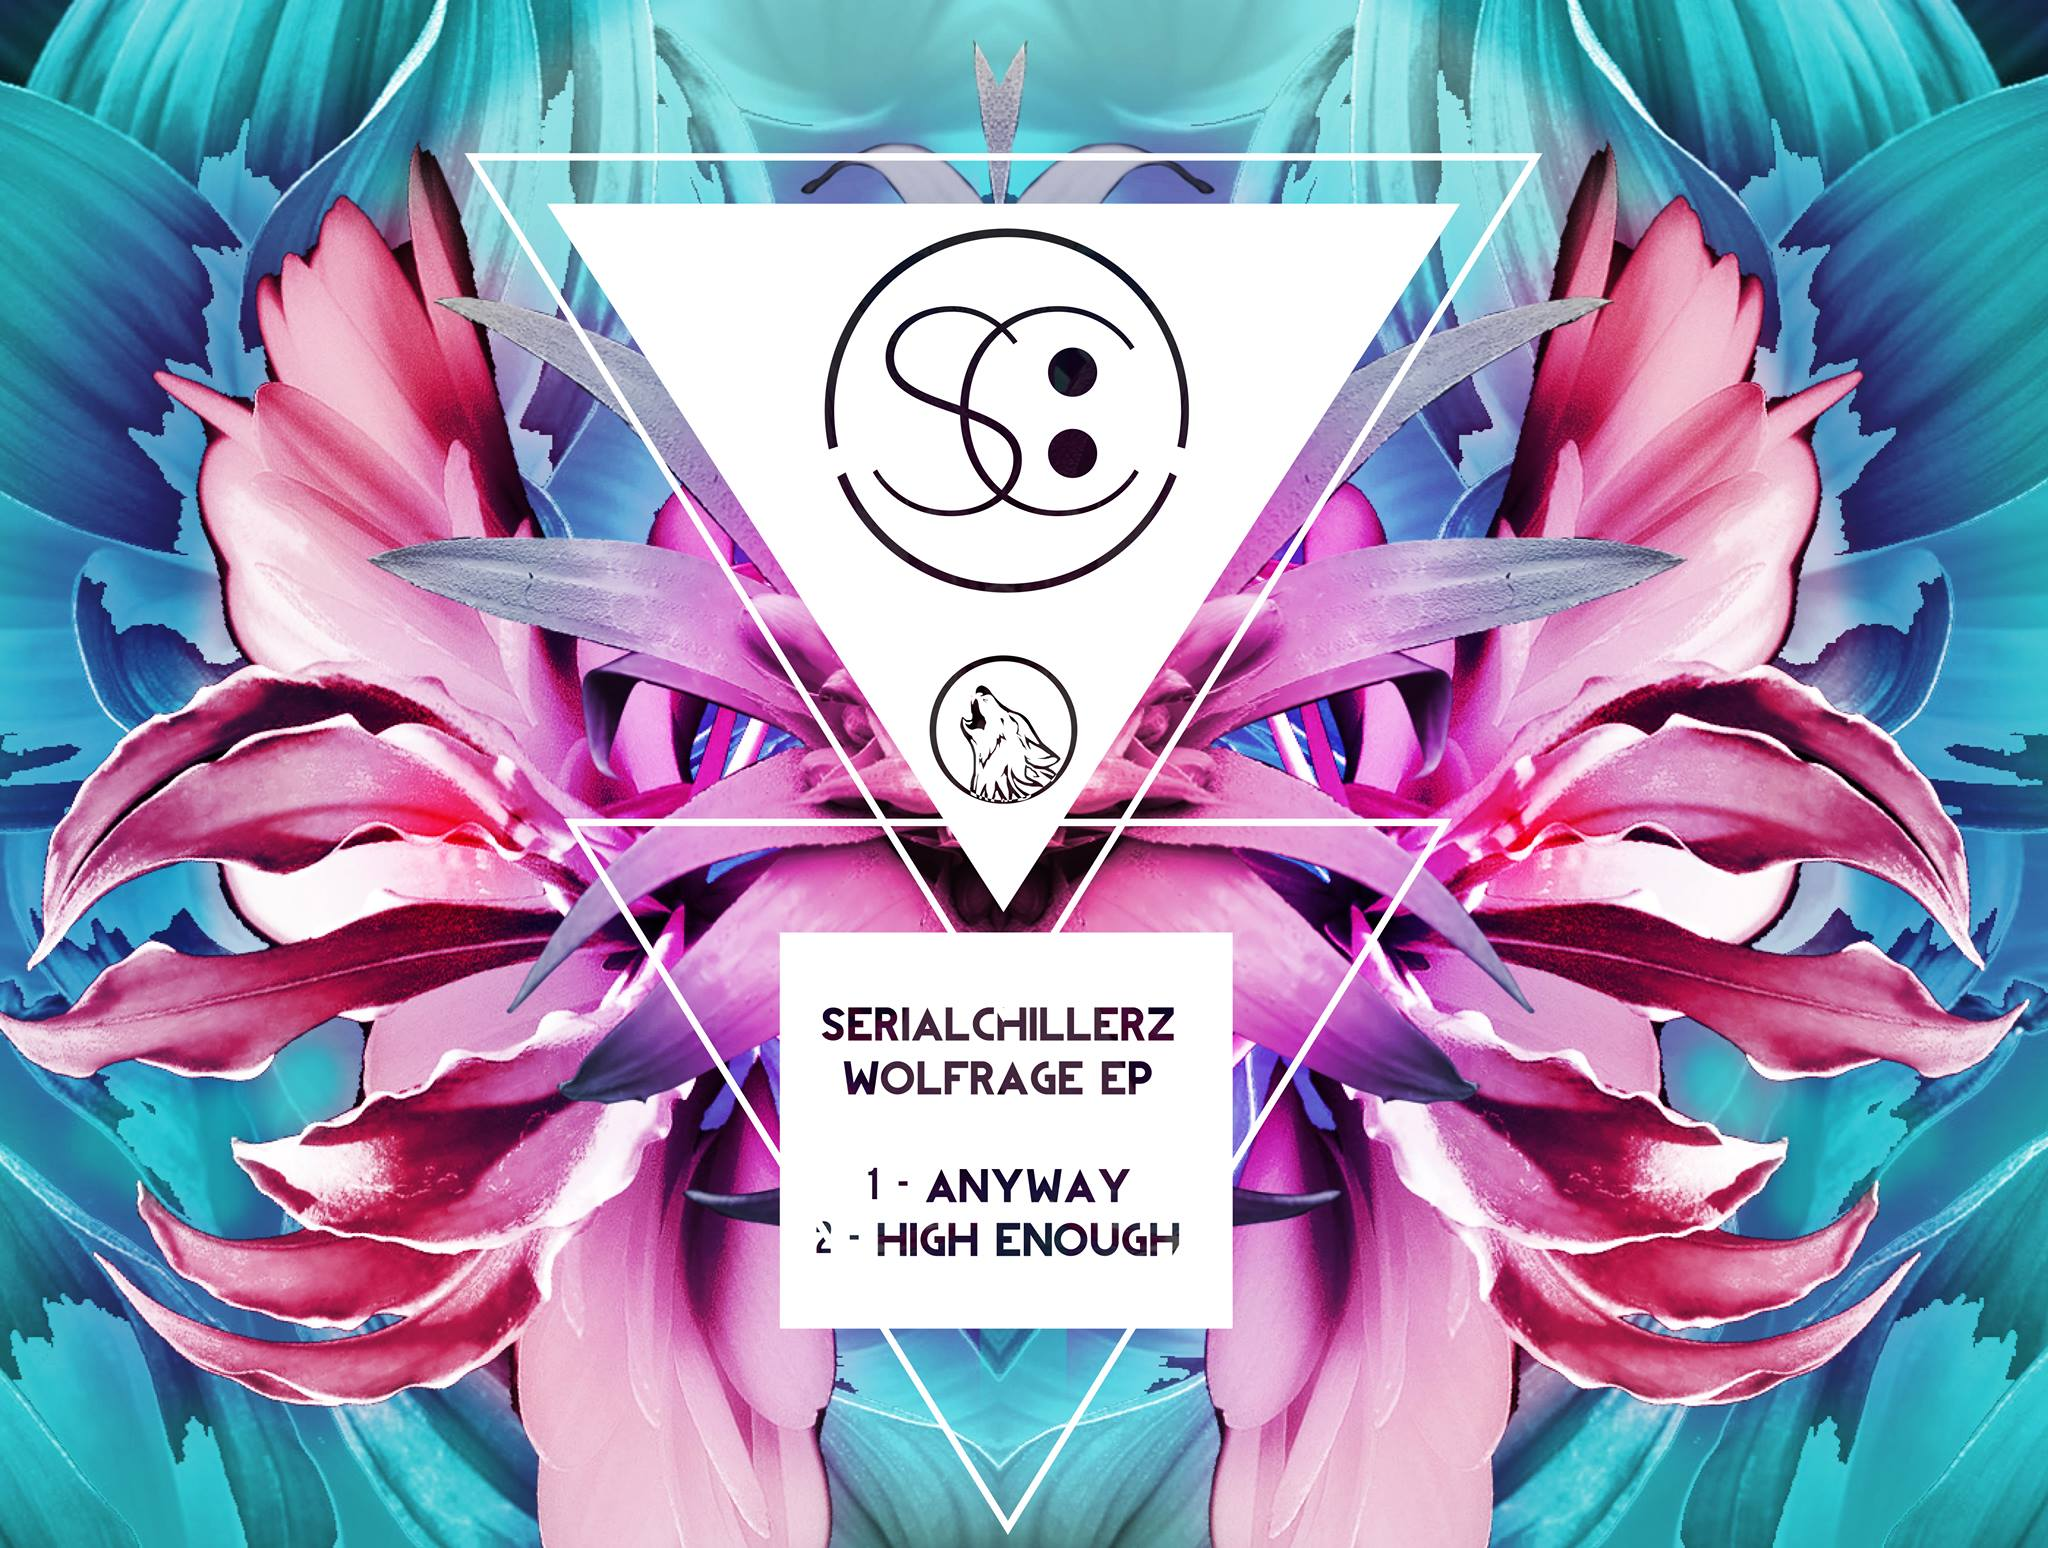 Serial Chillerz lança seu primeiro EP na Wolfrage Recordings CHRNK, ferrero, Serial Chillerz, The Pussycat Dolls, Wolfrage Recordings